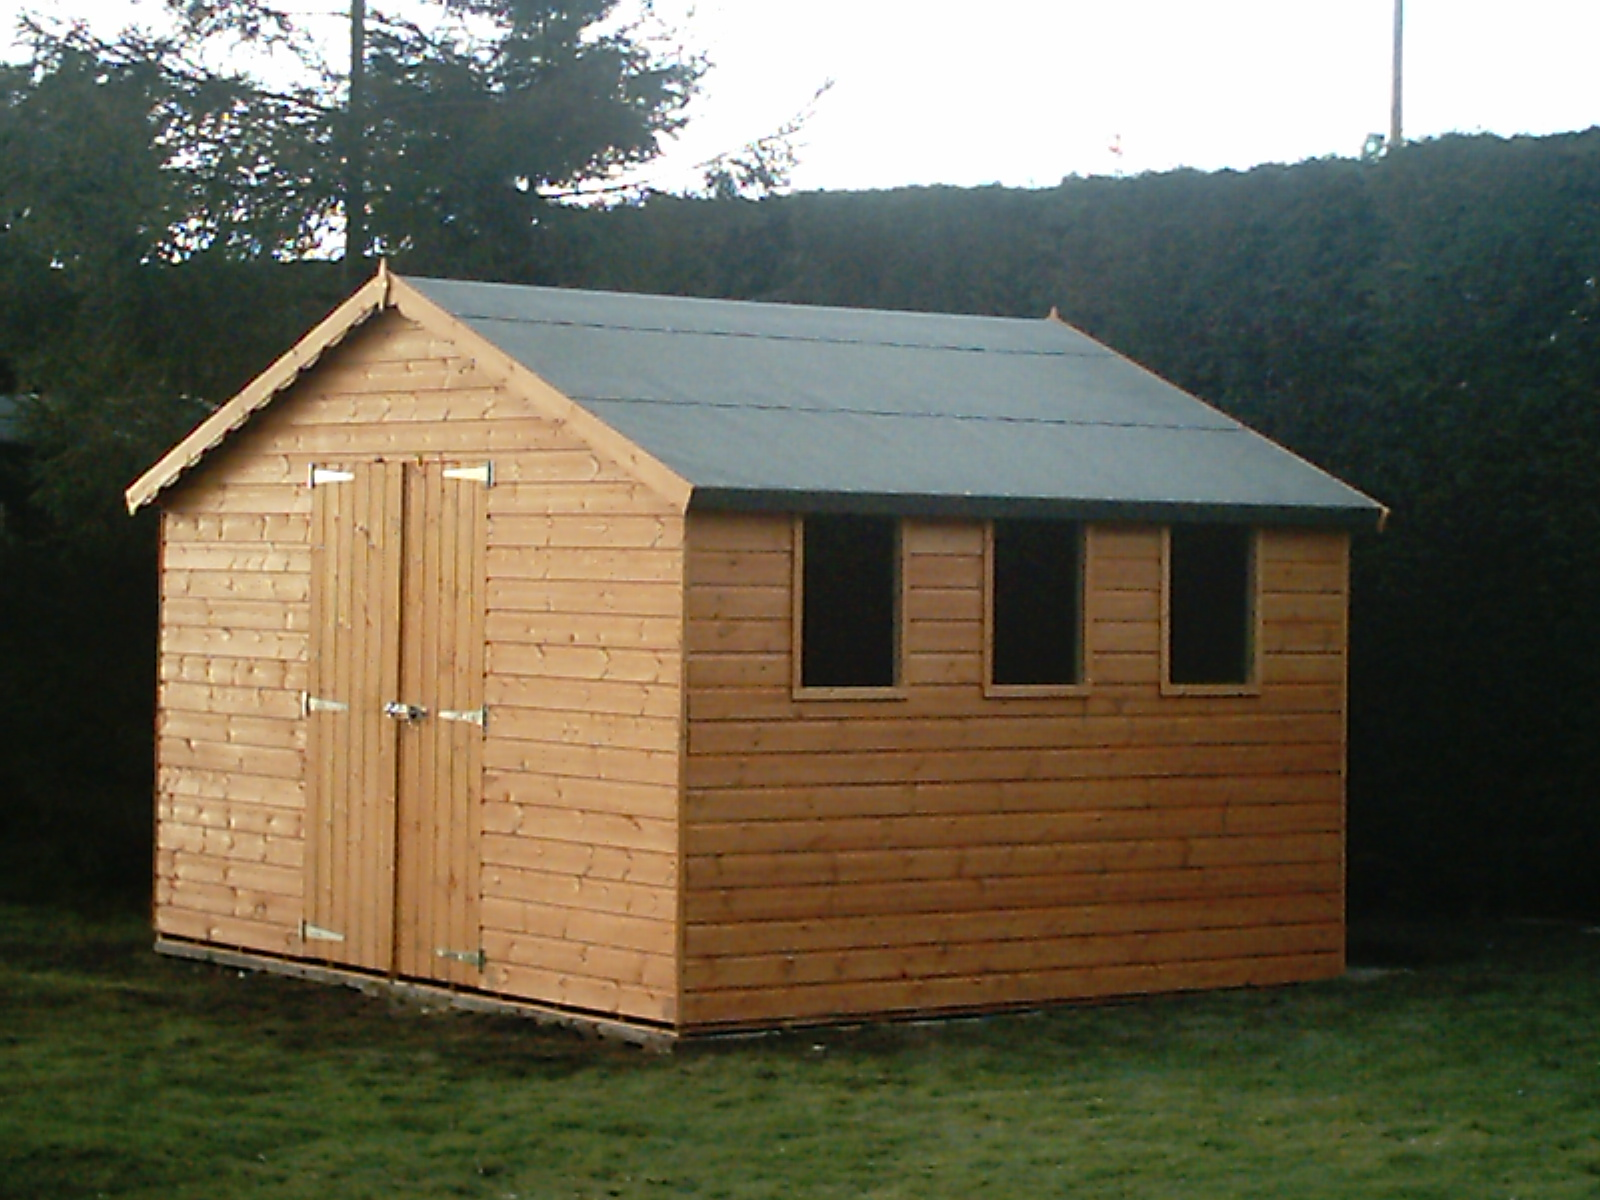 Shed Blueprints: How To Build A Wooden Shed - Steps For ...